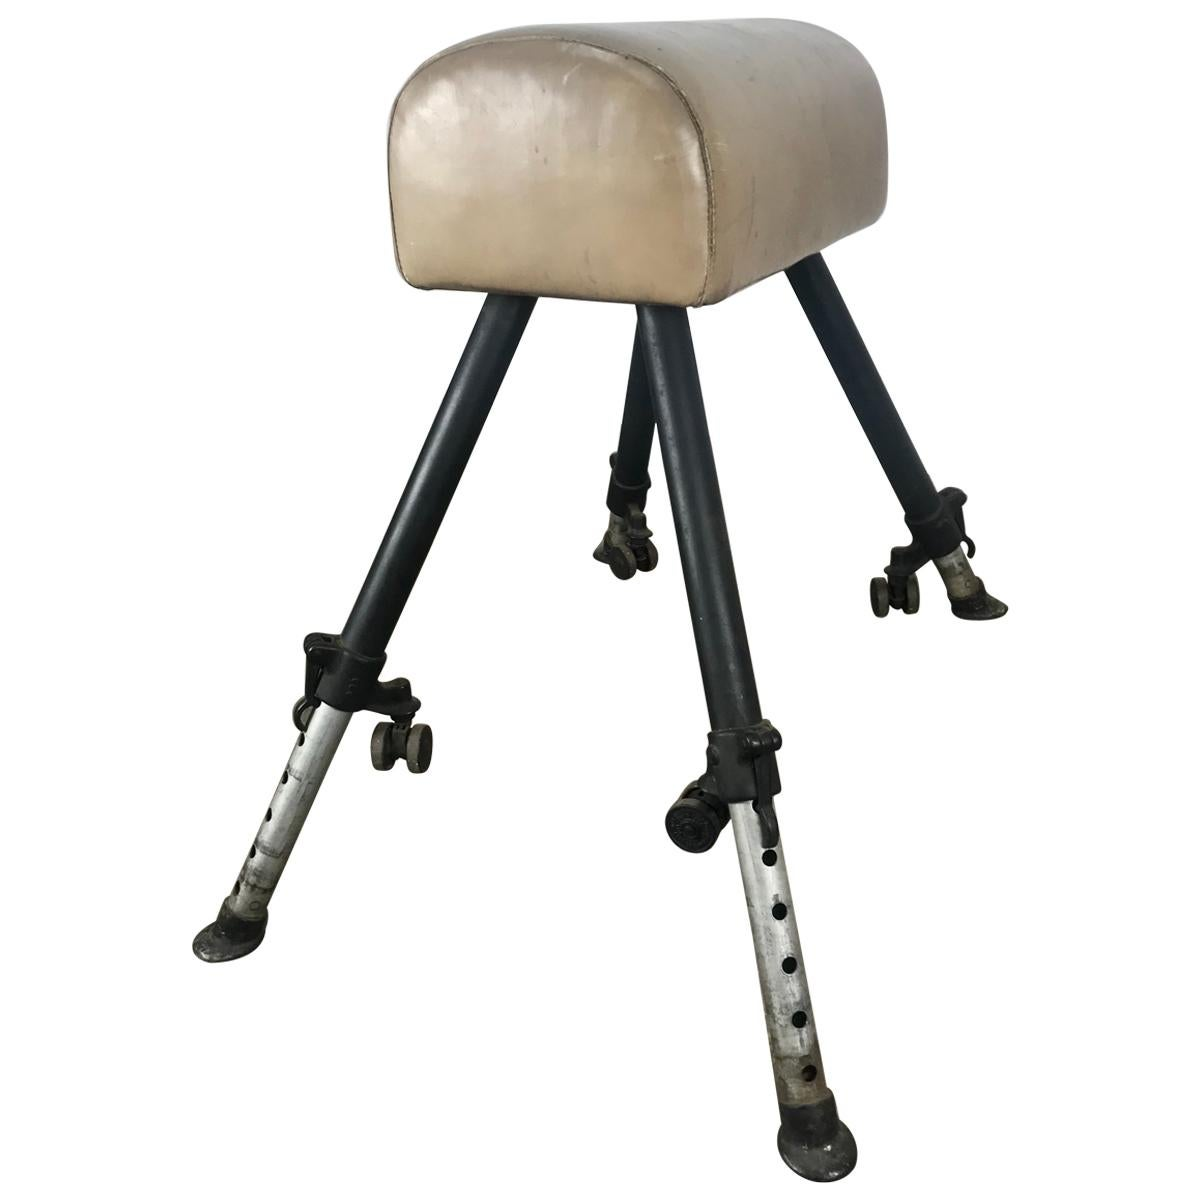 Classic 1920s Adjustable Height Leather and Cast Iron Pommel Gym Horse